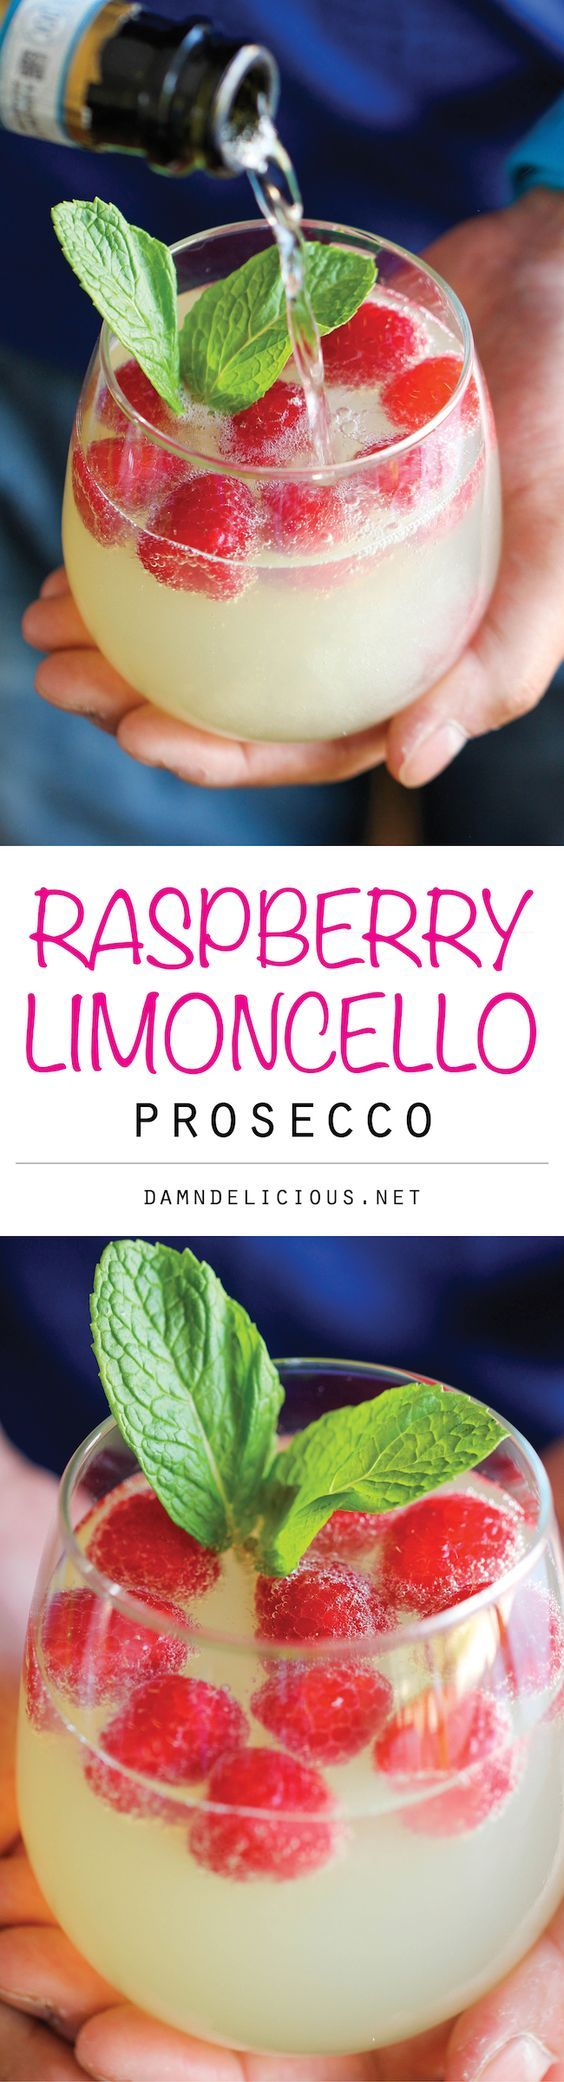 Raspberry Limoncello Prosecco // the perfect summer cocktail, ready in 5 minutes #cocktails #cheers